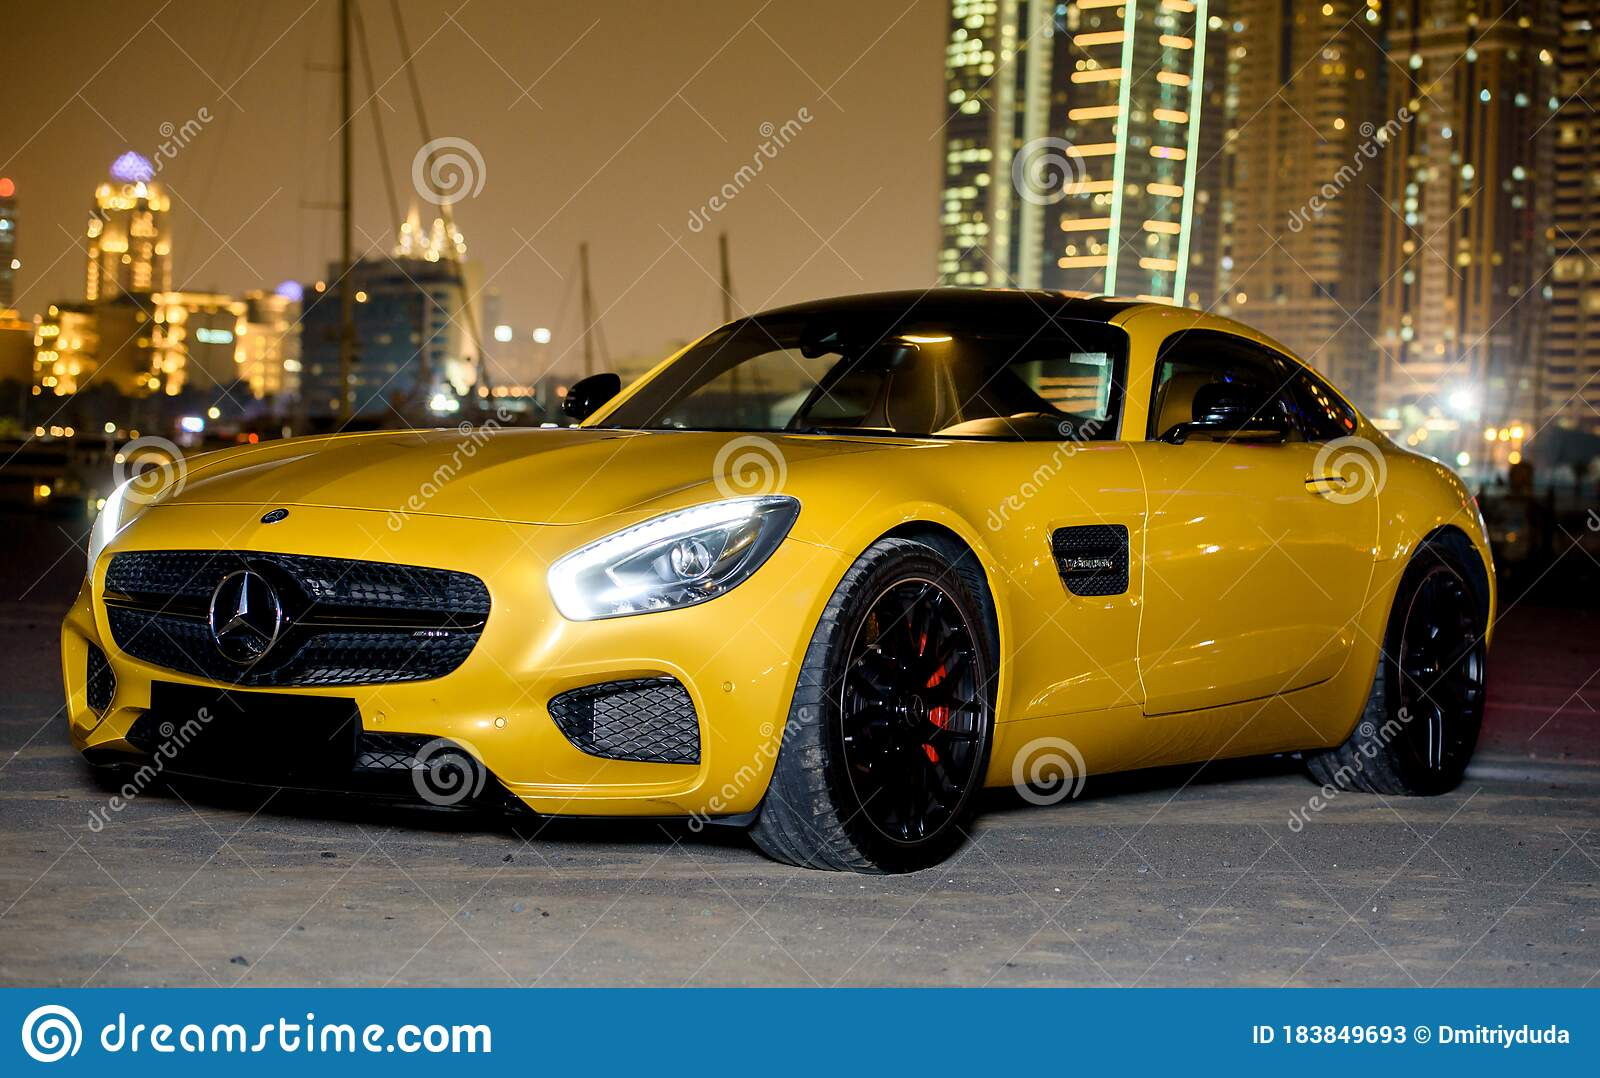 Dubai Uae January 23 2017 Yellow Luxury Supercar Mercedes Benz Amg On The Road In Dubai Editorial Stock Photo Image Of Numbers Expensive 183849693